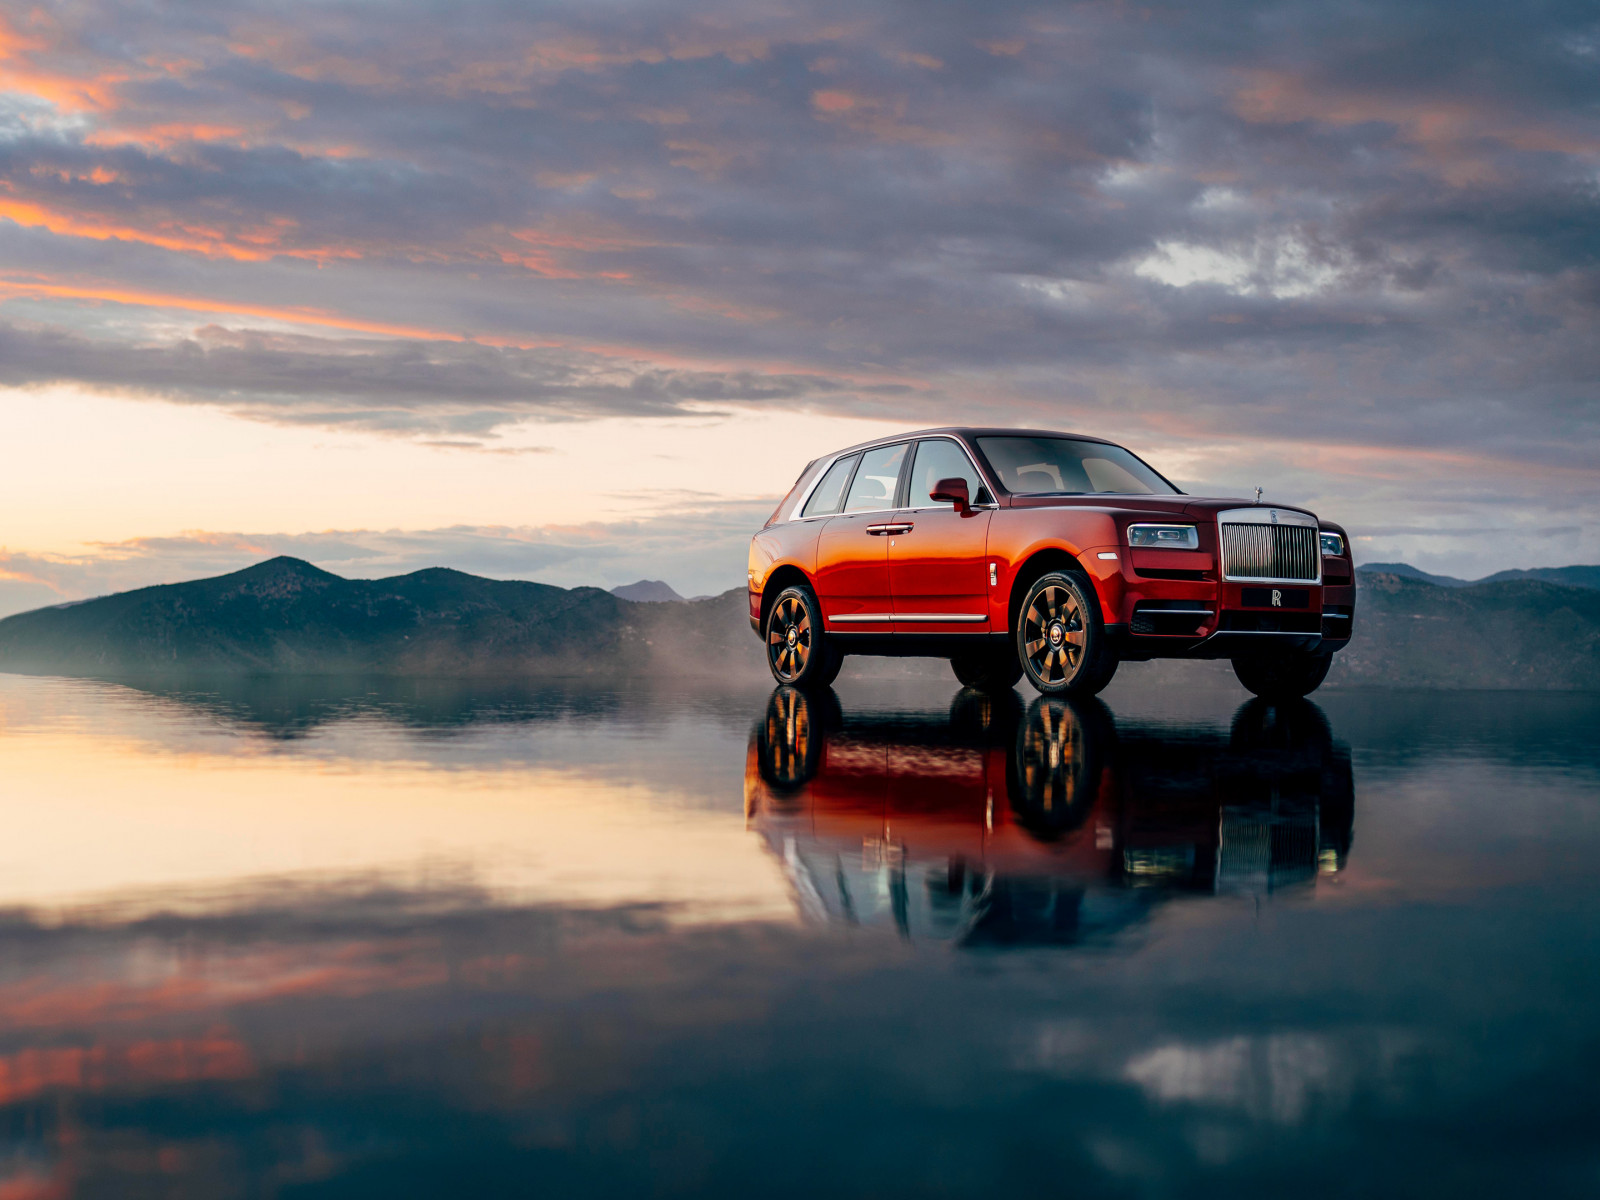 Rolls Royce Cullinan wallpaper 1600x1200